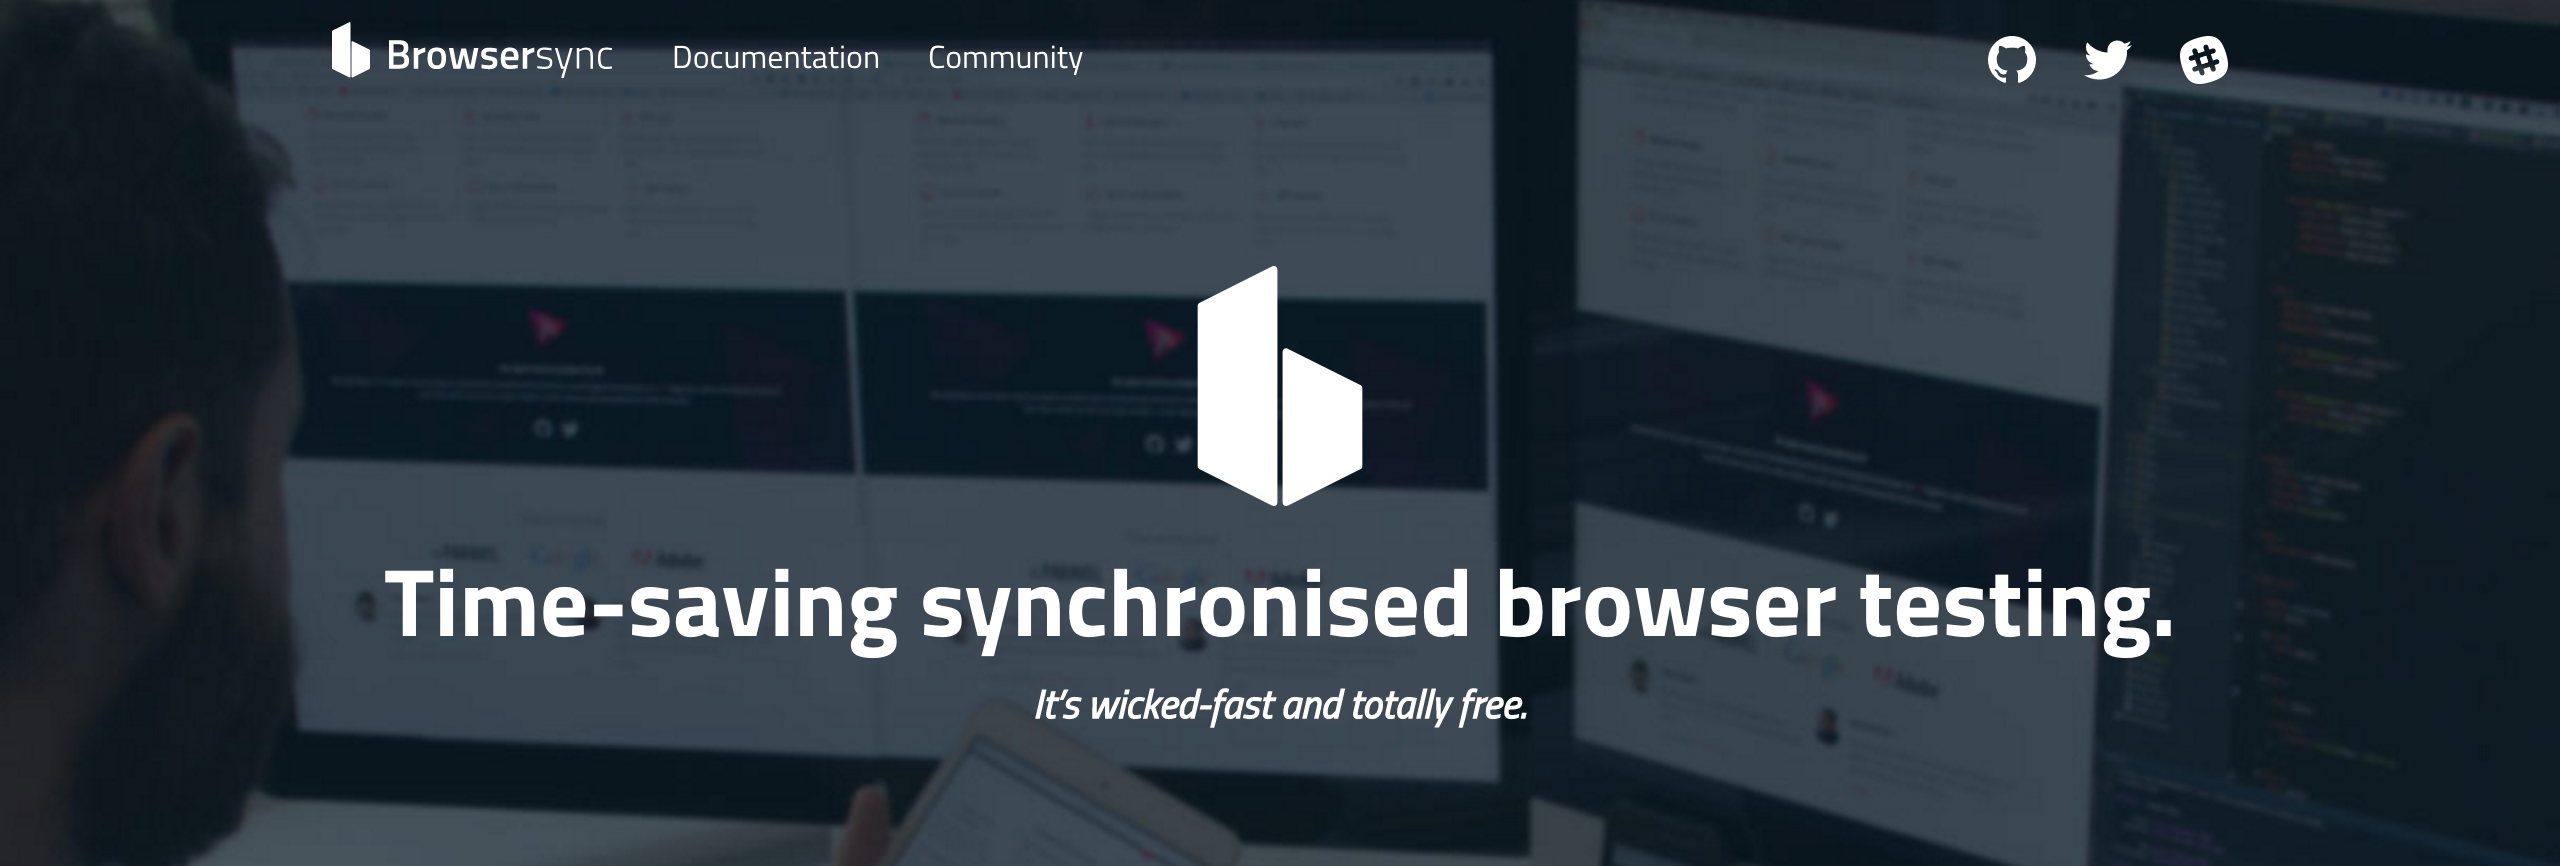 Using BrowserSync for Synchronised Browser Testing 1  Extensive Reviews